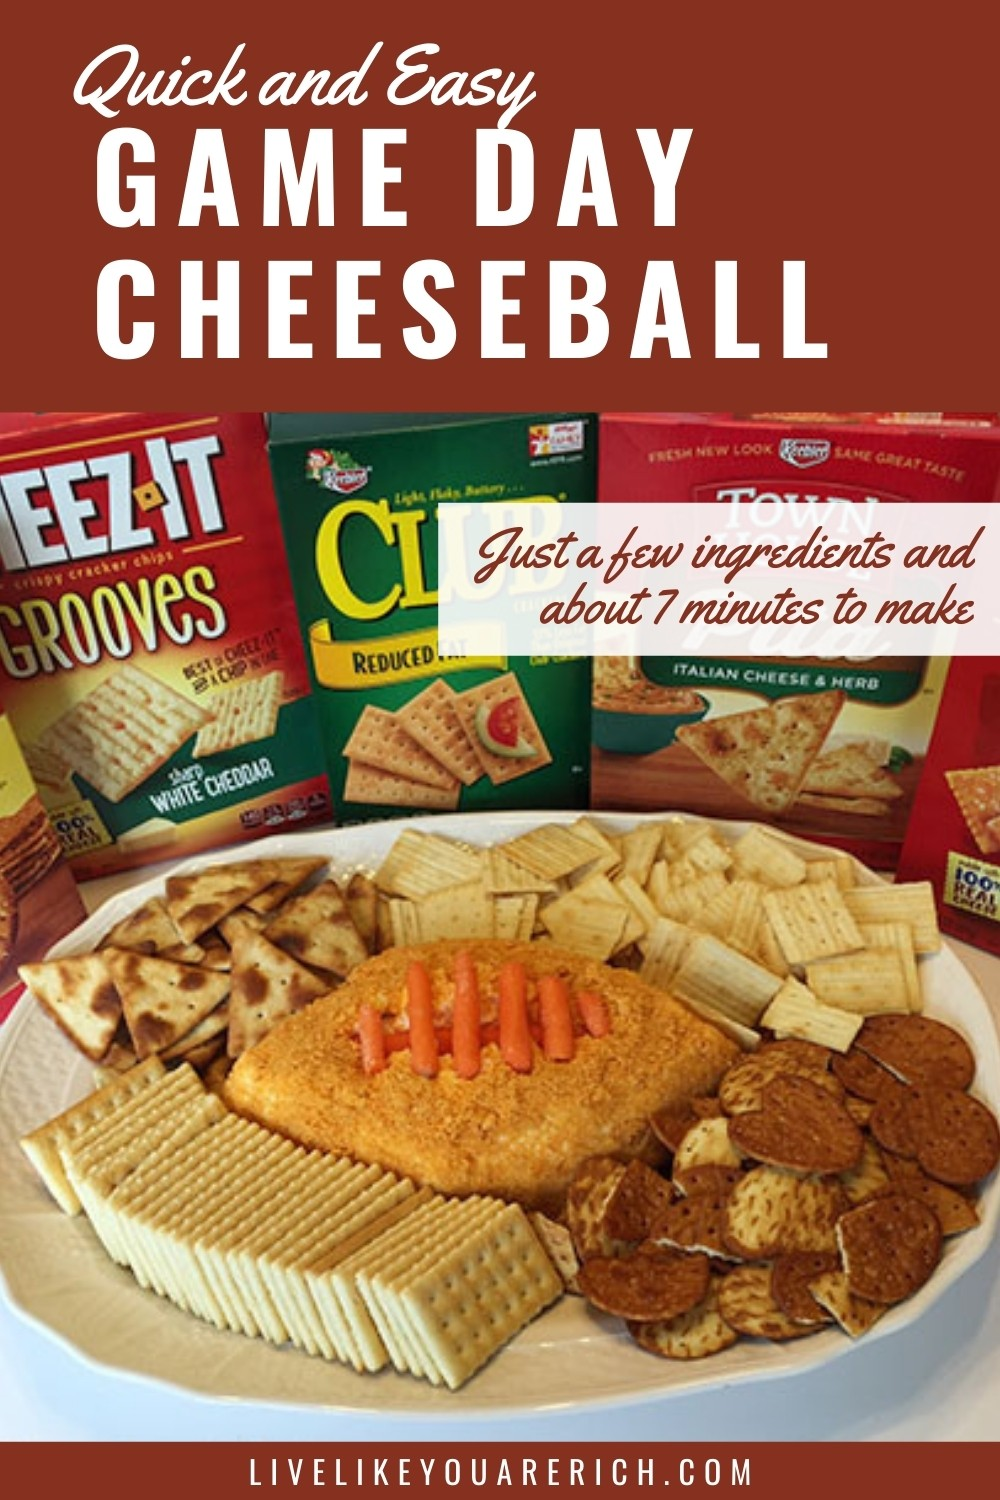 Game Day Cheeseball. This game day Cheeseball dip is very simple. You need just a few ingredients and about 7 minutes to make it. This is a perfect football game party, tailgating and game day foods. #tgamedayfood #cheeseball